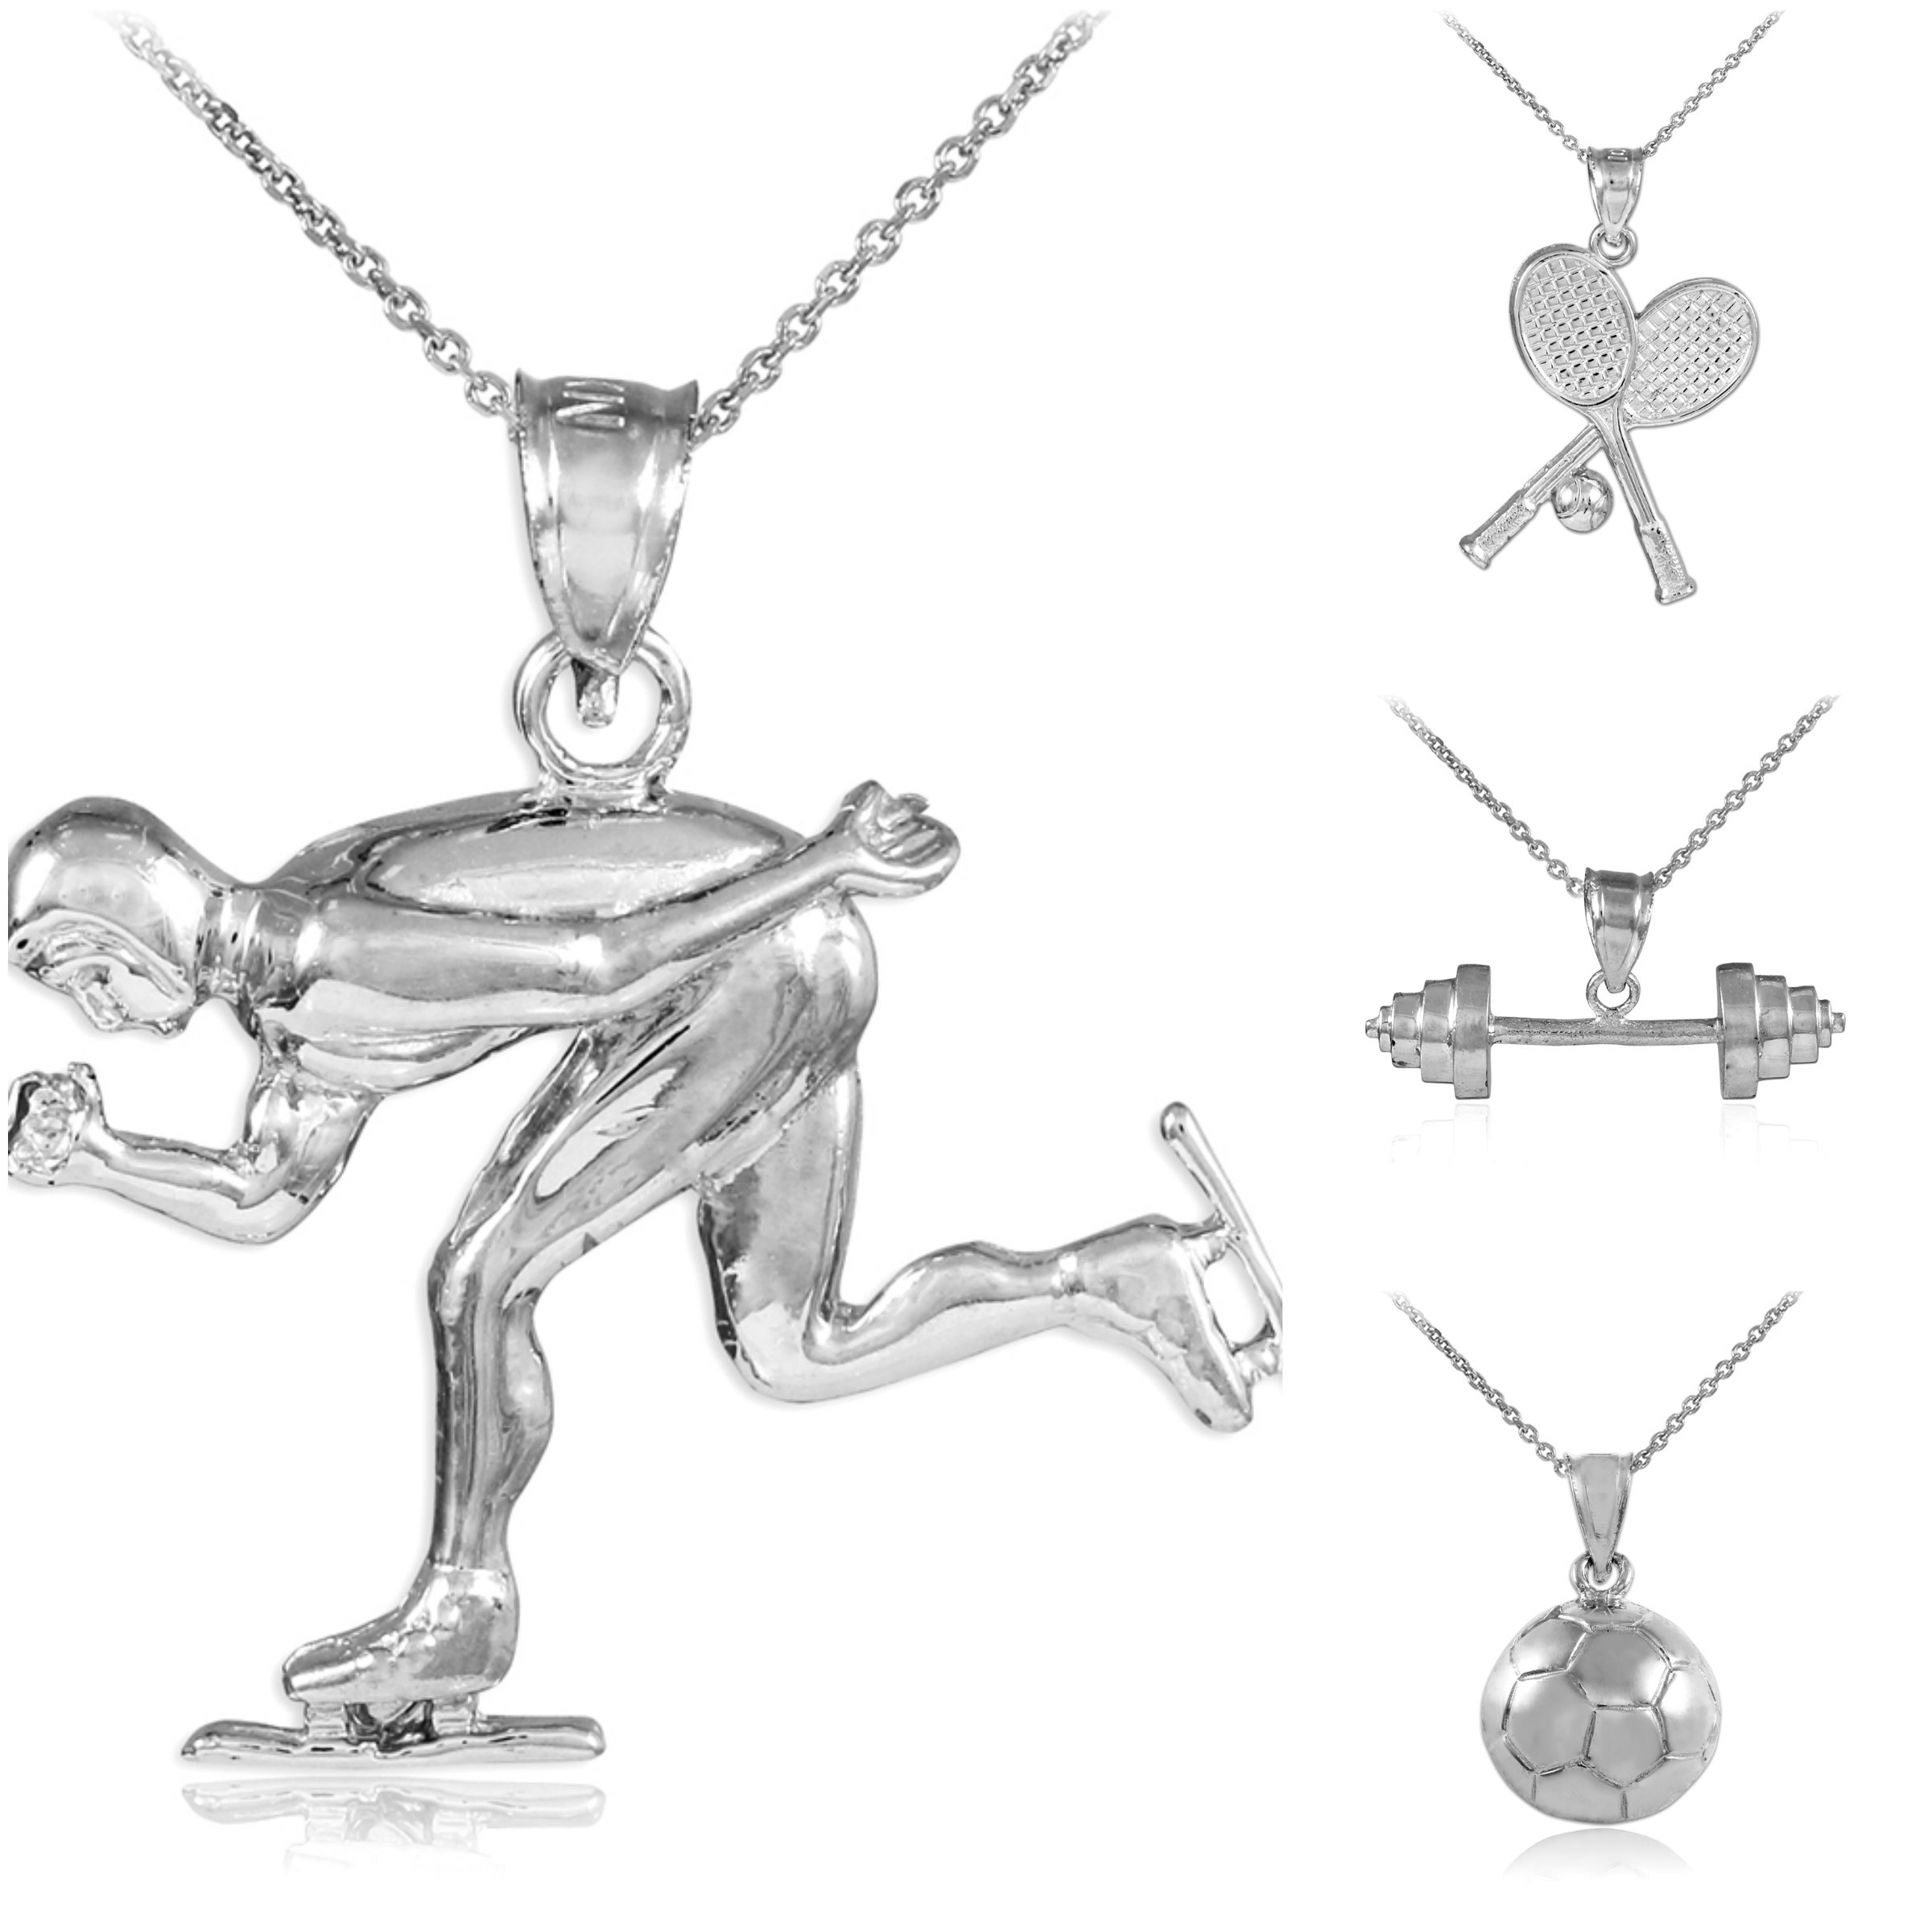 wholesaleretail listing rqnx il sold sterling filled silver necklace pendant soccer cleat fullxfull by jewelry